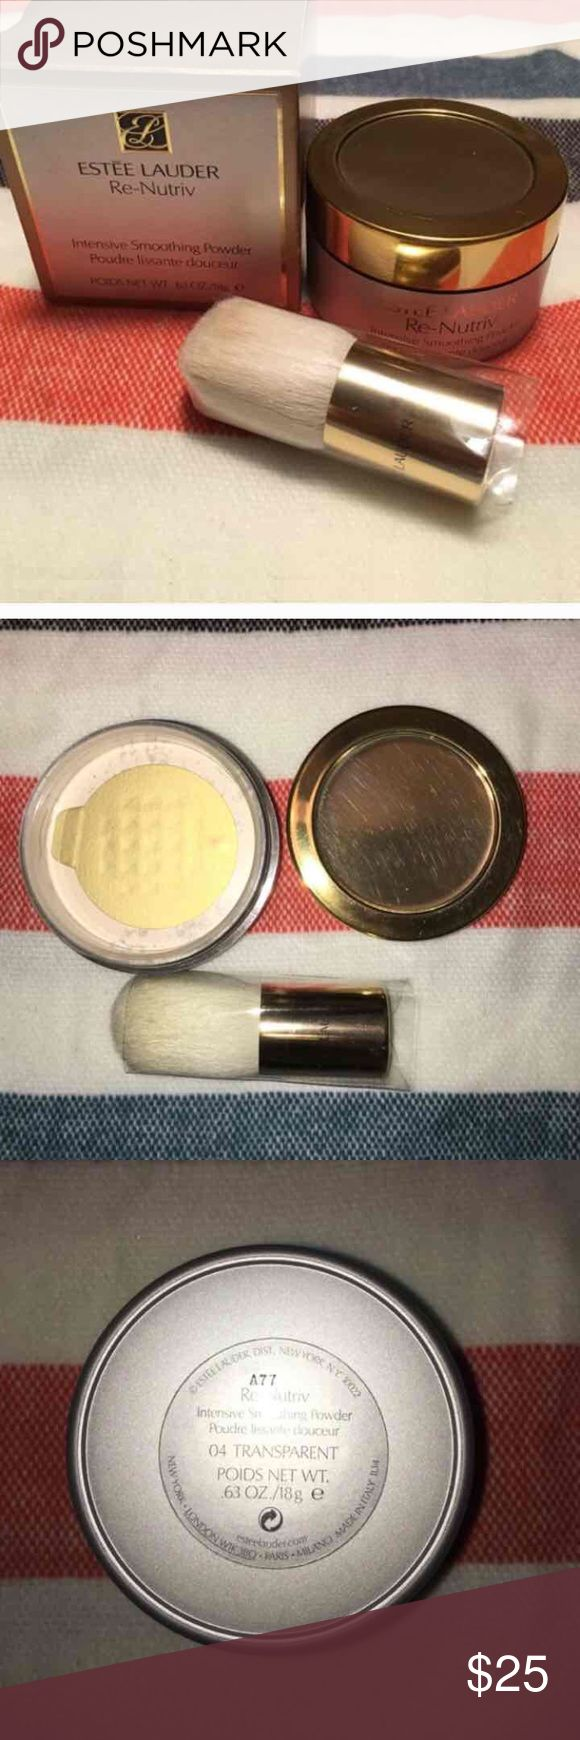 mejores ideas sobre transparent powder en rimmel new esteacutee lauder re nutriv loose powder new esteacutee lauder re nutriv powder